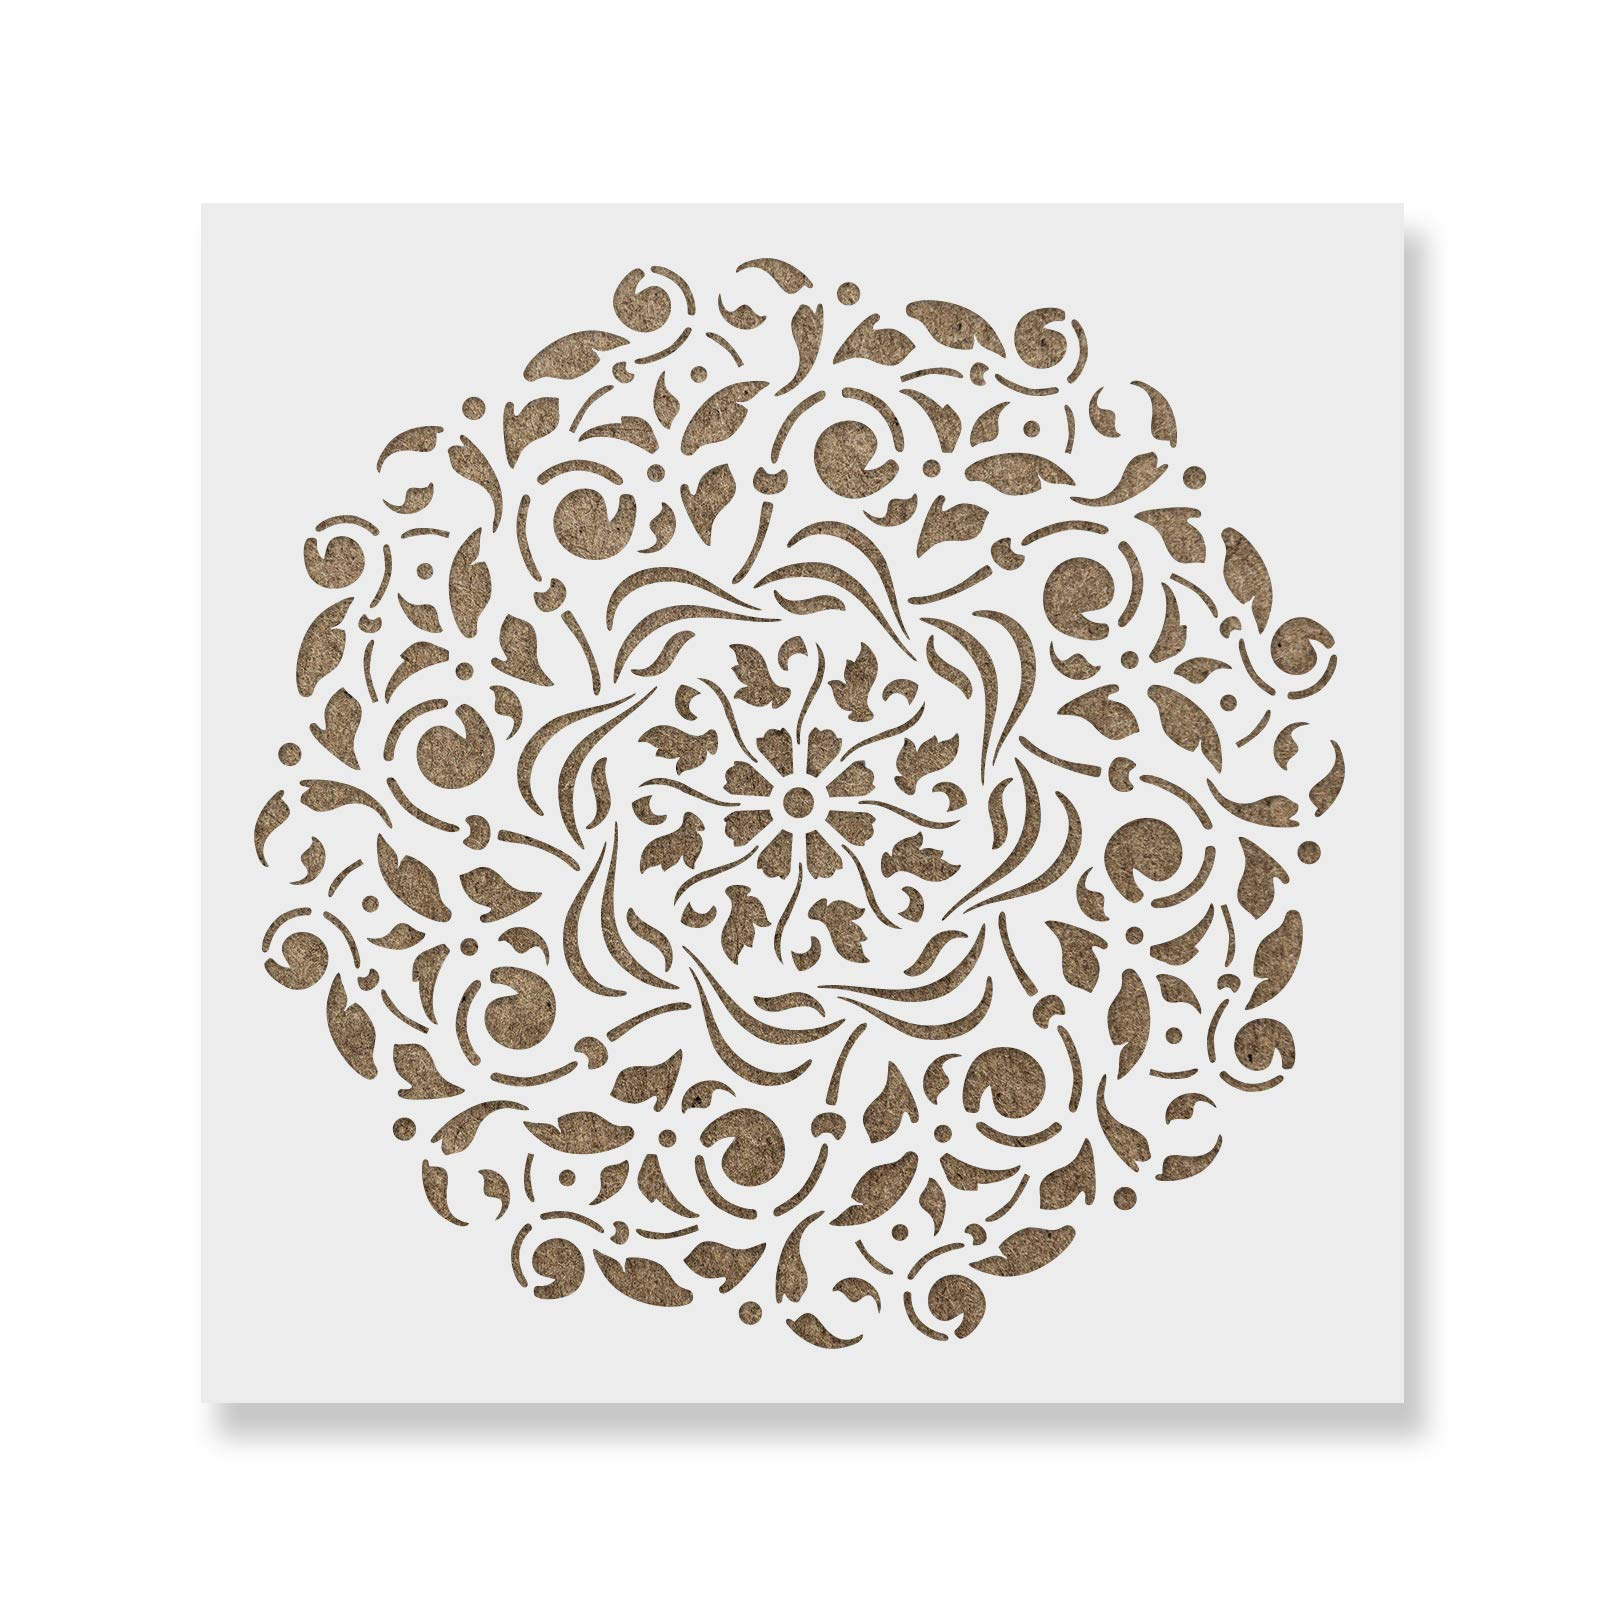 Scheele Mandala Stencil Template for Walls and Crafts - Reusable Stencils for Painting in Small & Large Sizes